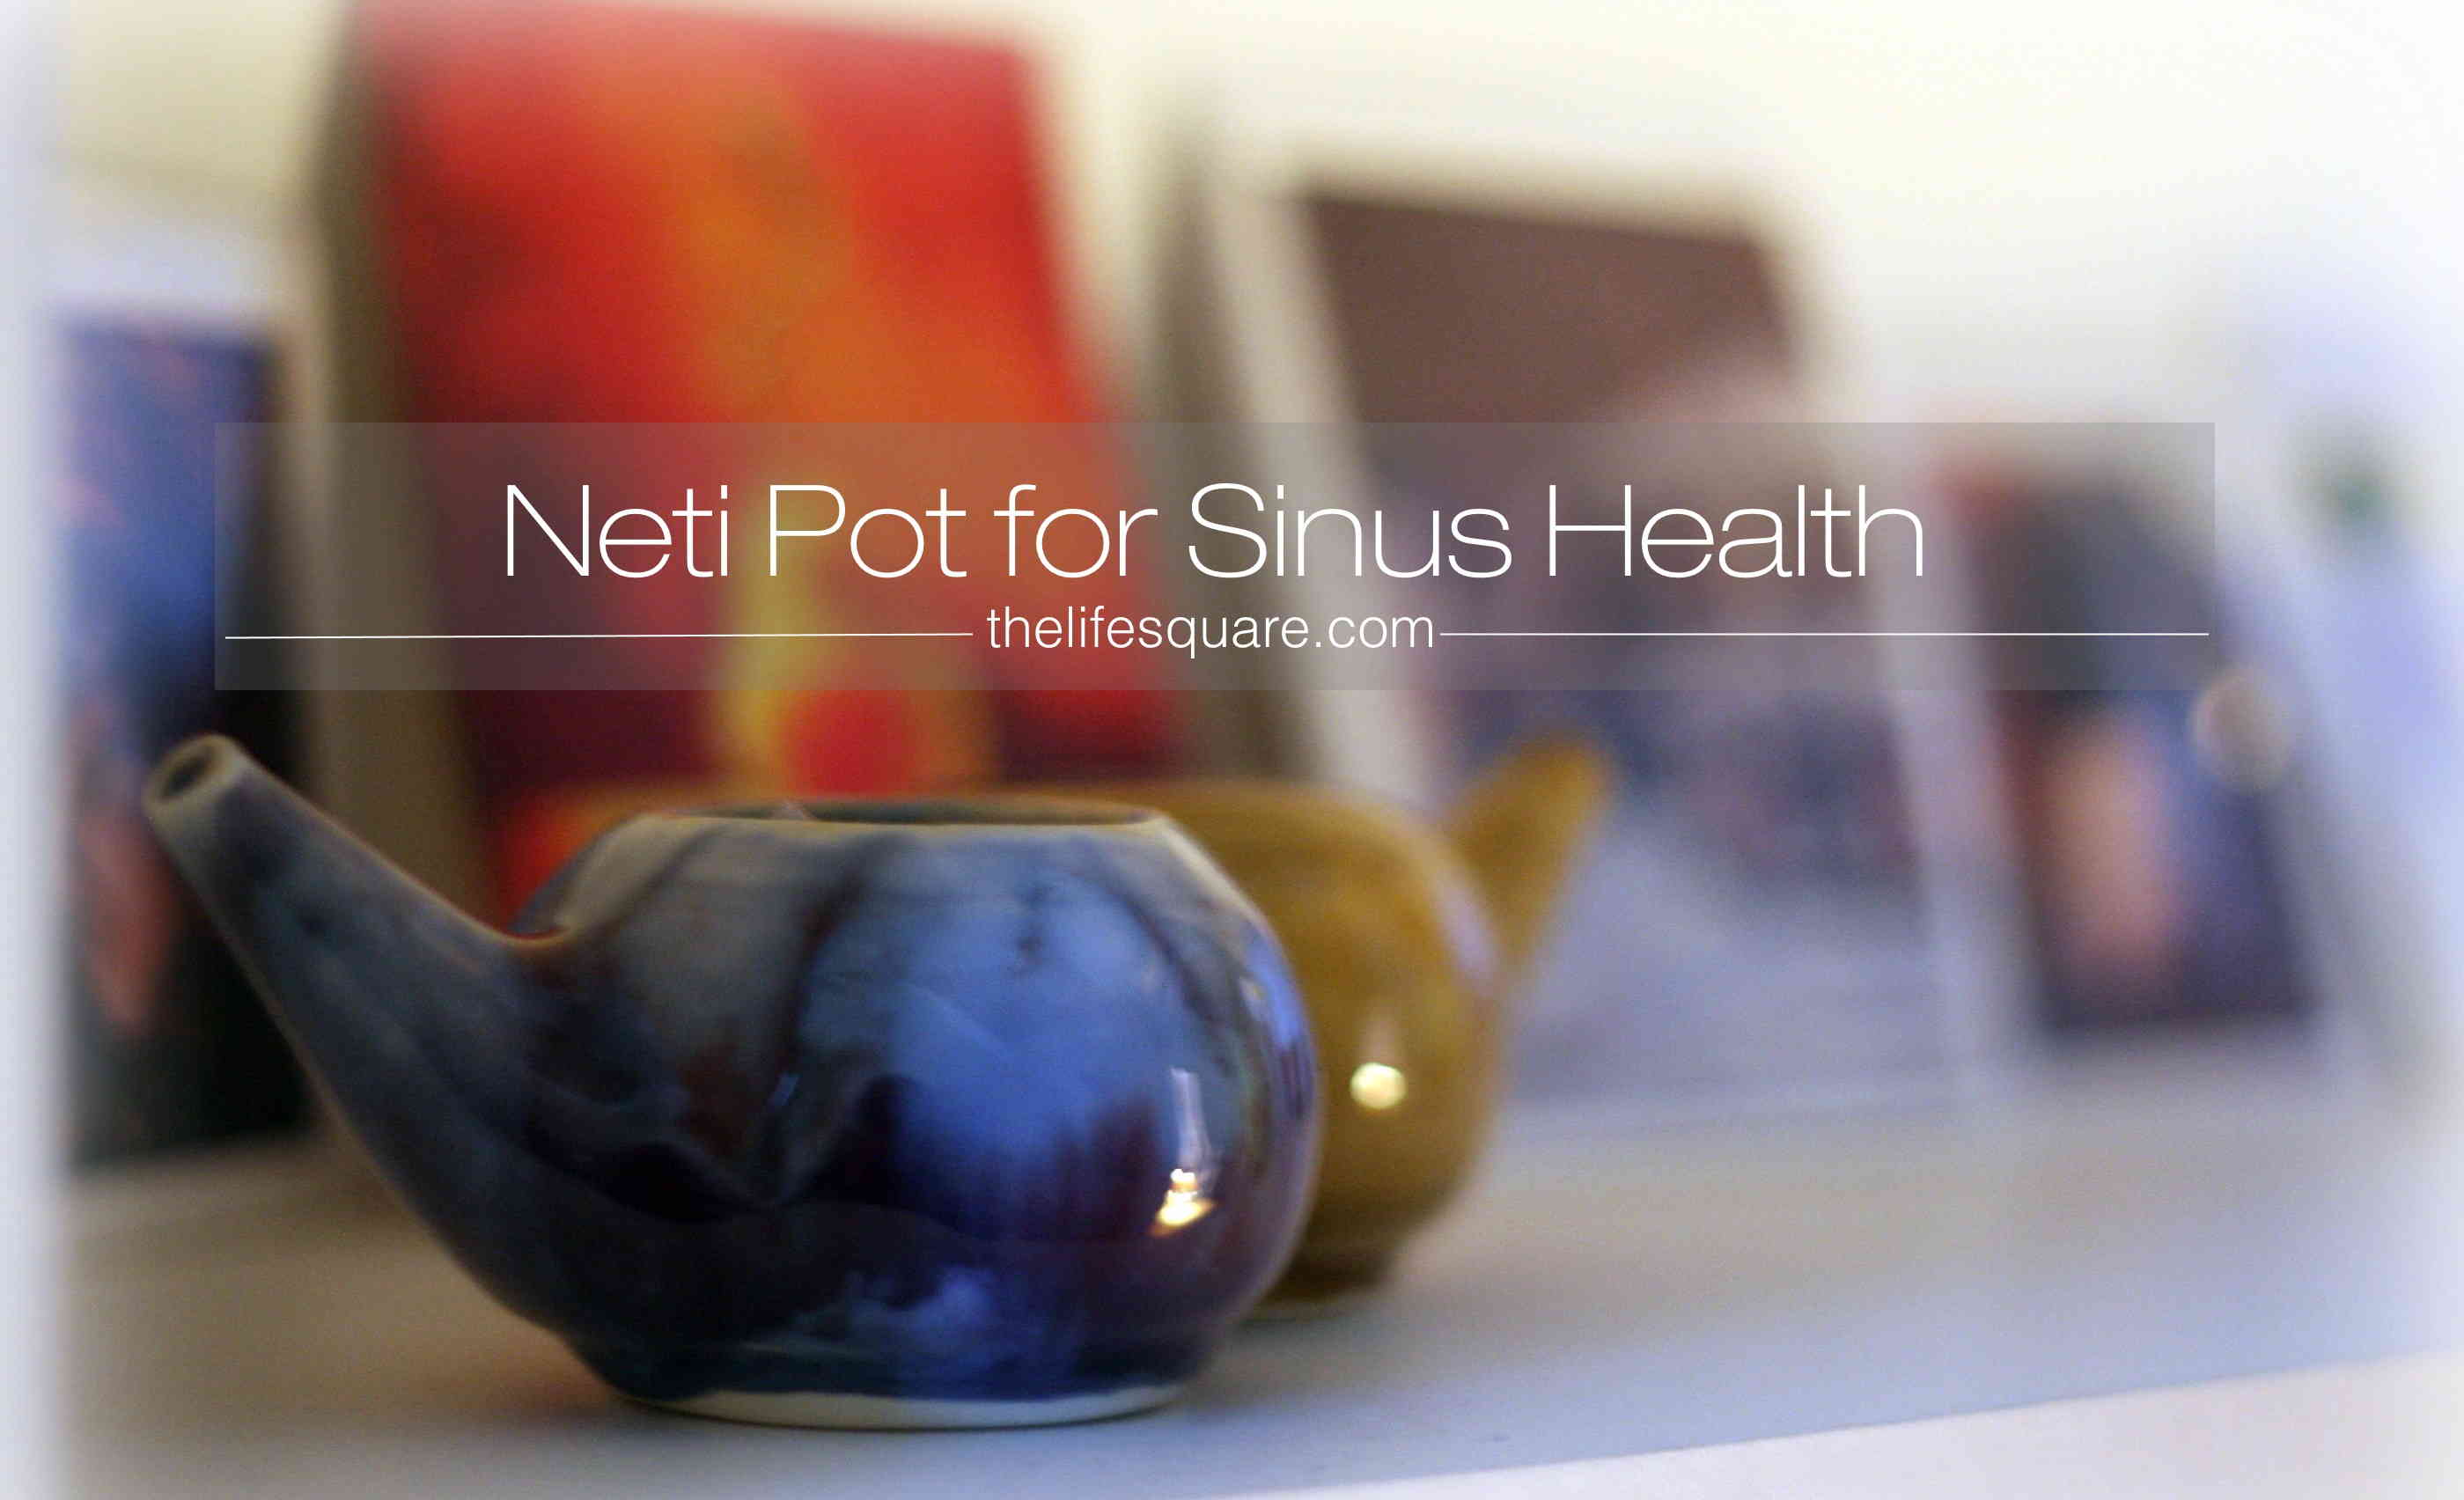 Neti Pot for Sinus HEalth